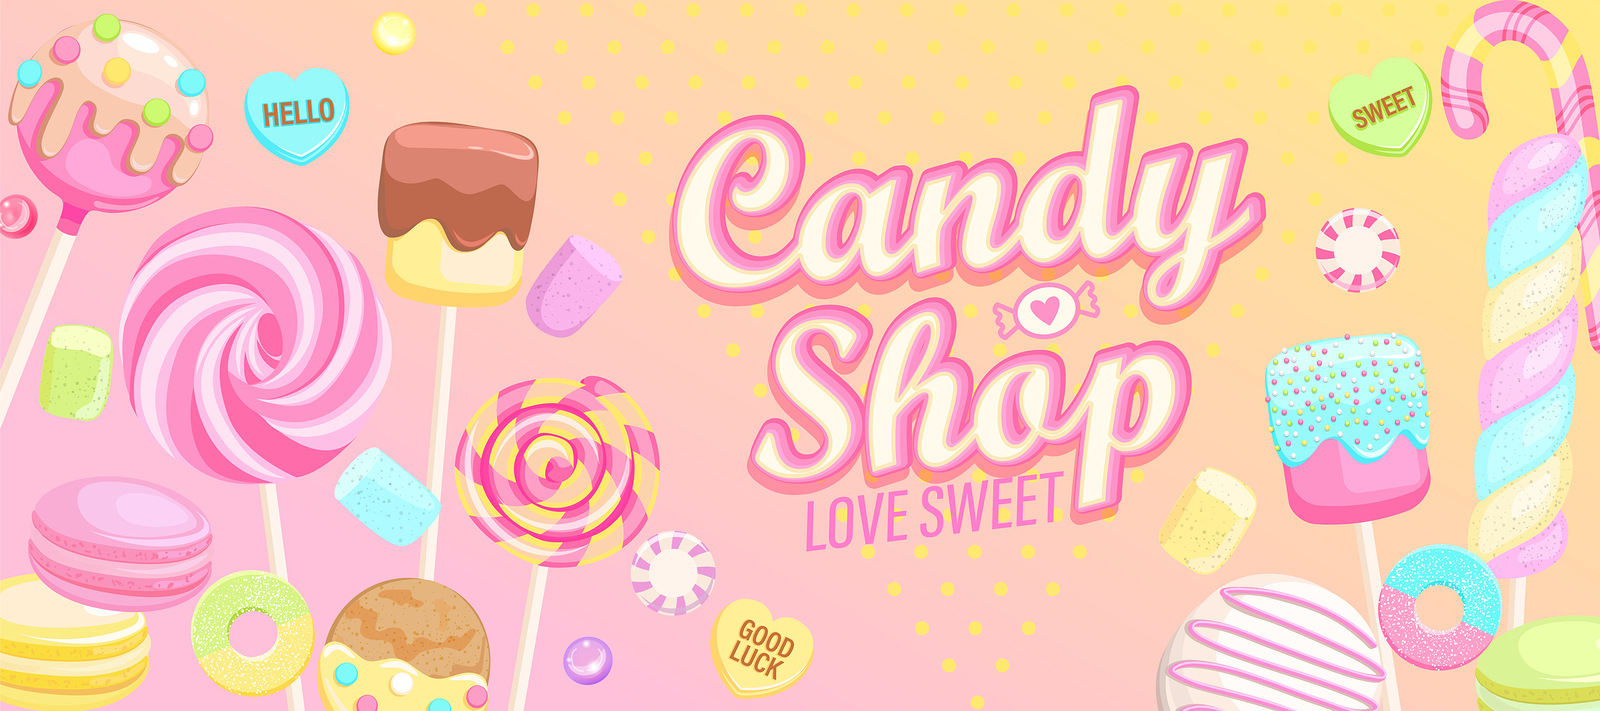 Bigstock-Candy-Shop-Confectionery-Dulces